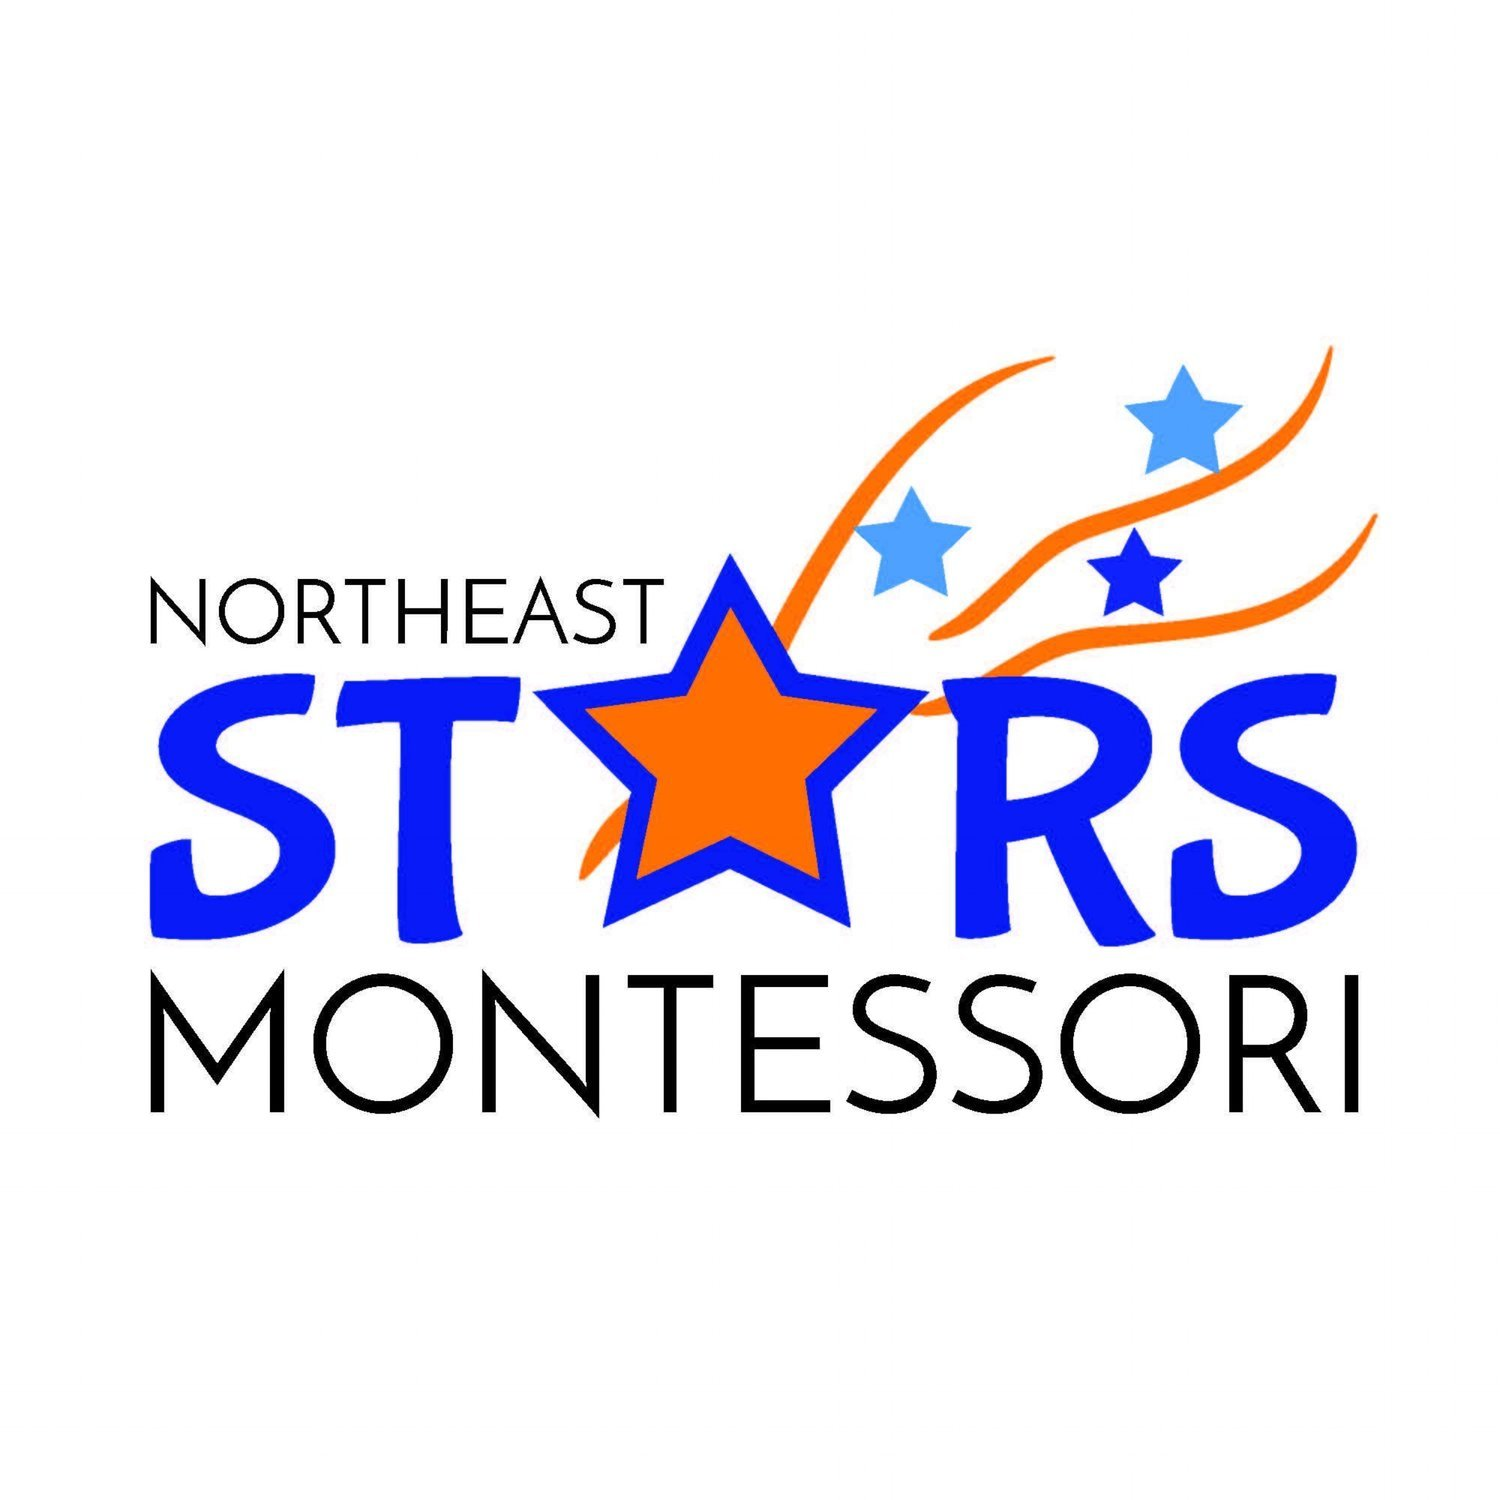 Northeast Stars Montessori